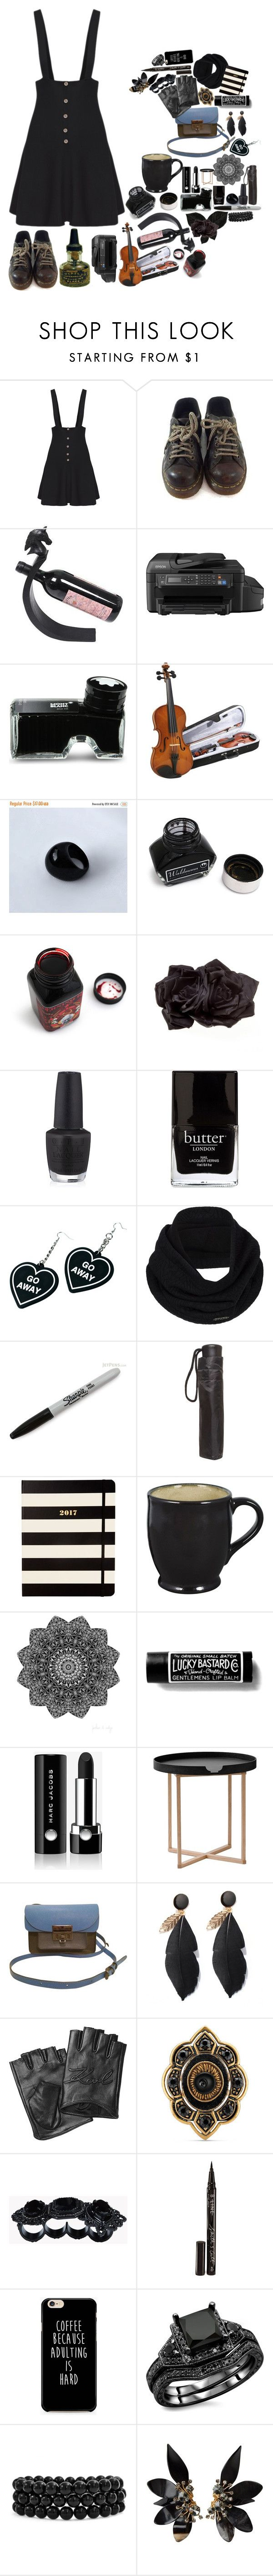 """""""Scorpion"""" by amanda-anda-panda ❤ liked on Polyvore featuring Dr. Martens, NOVICA, Epson, Montblanc, windsor., Johnny Loves Rosie, OPI, Butter London, Witch Worldwide and prAna"""